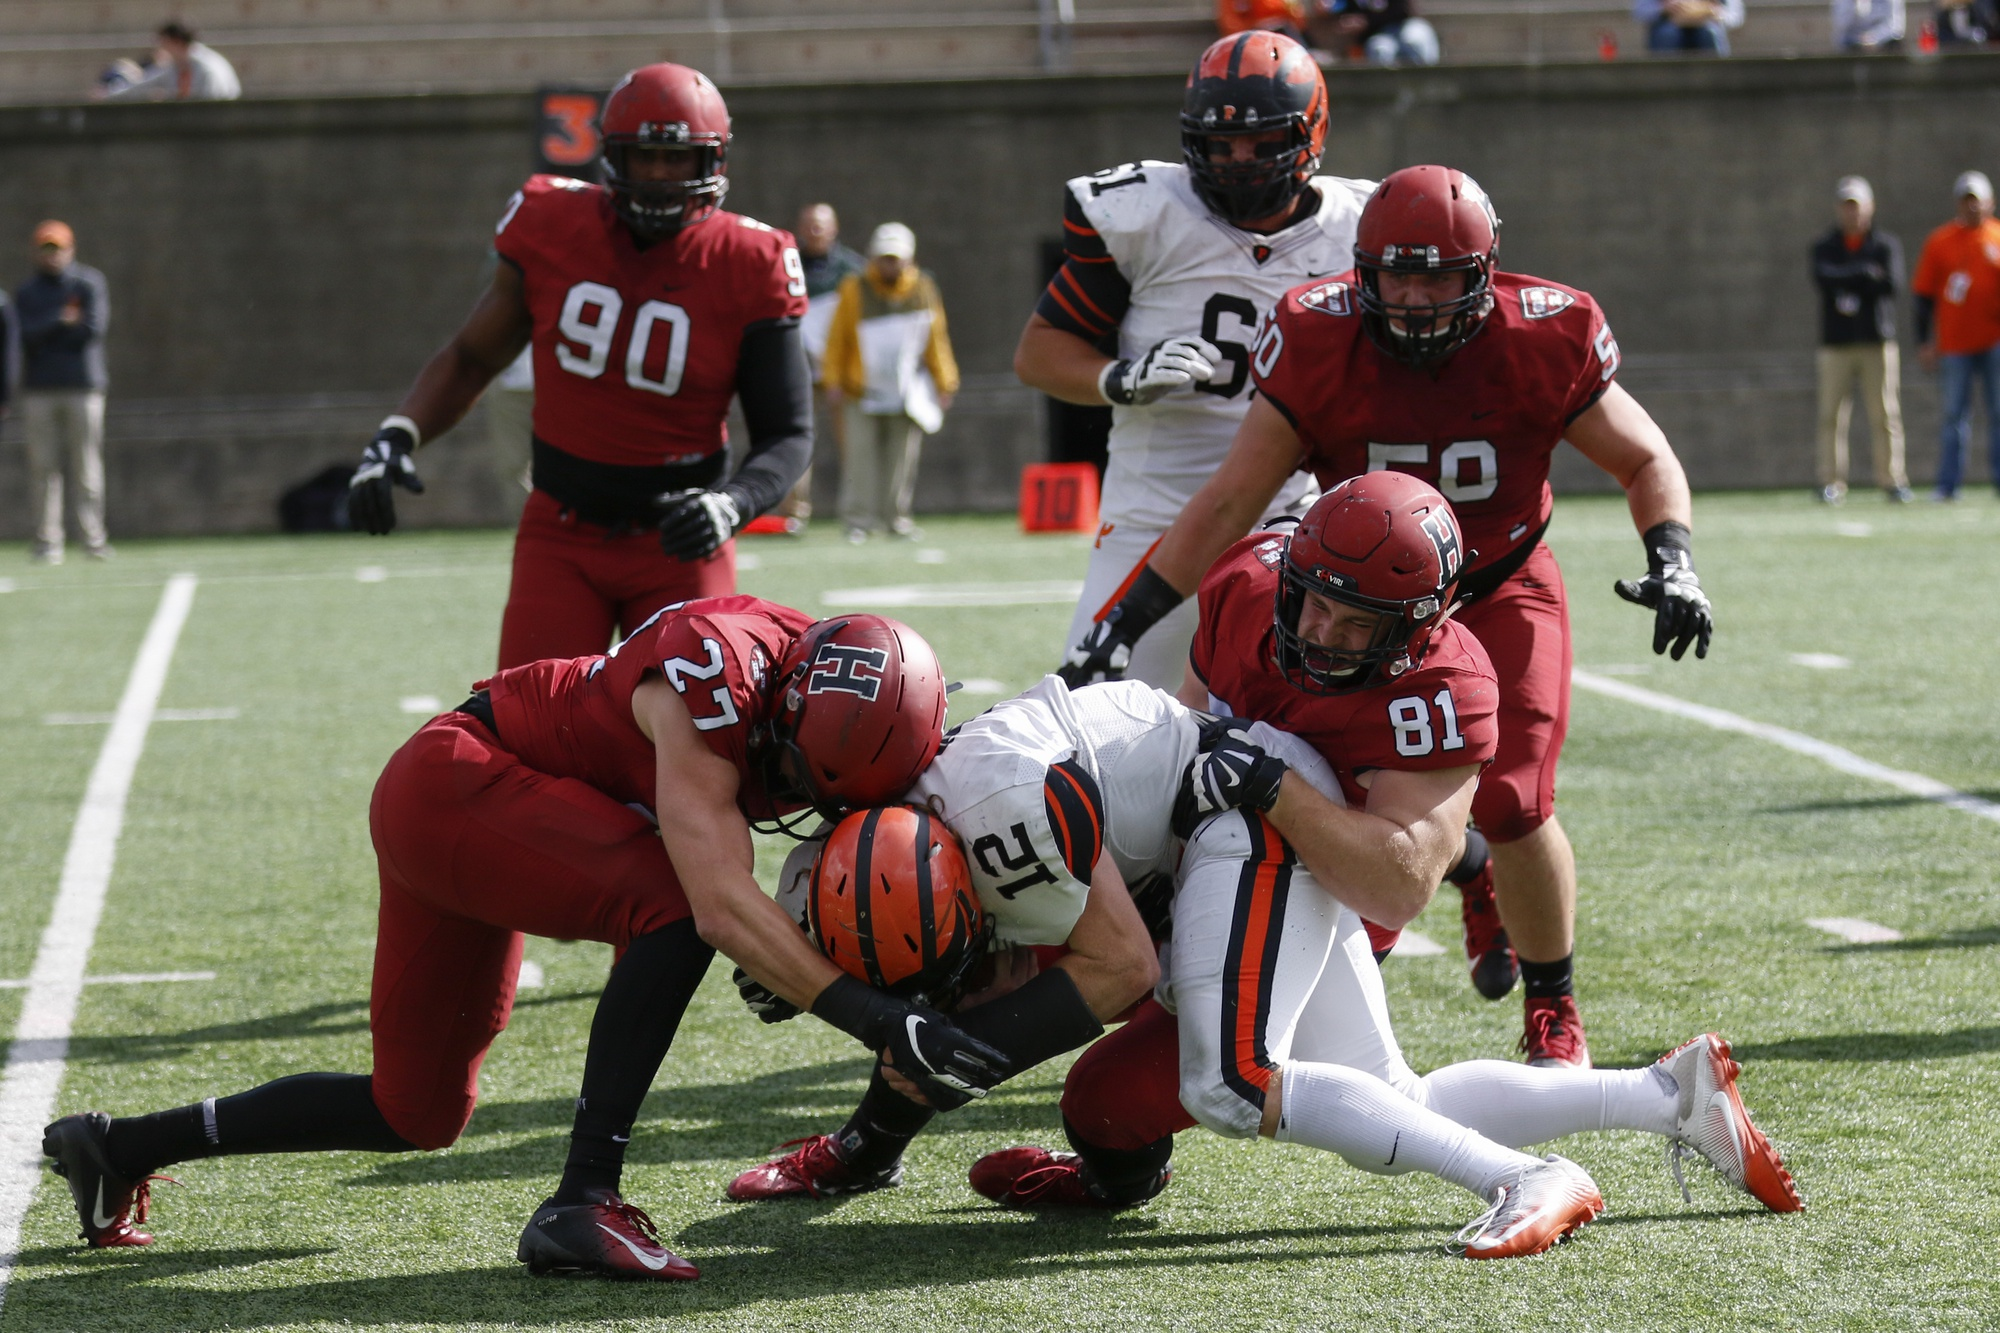 The Crimson's defense limited a potent Princeton attack on Saturday, holding the Tigers to just 29 points compared to their prior season average of 52.